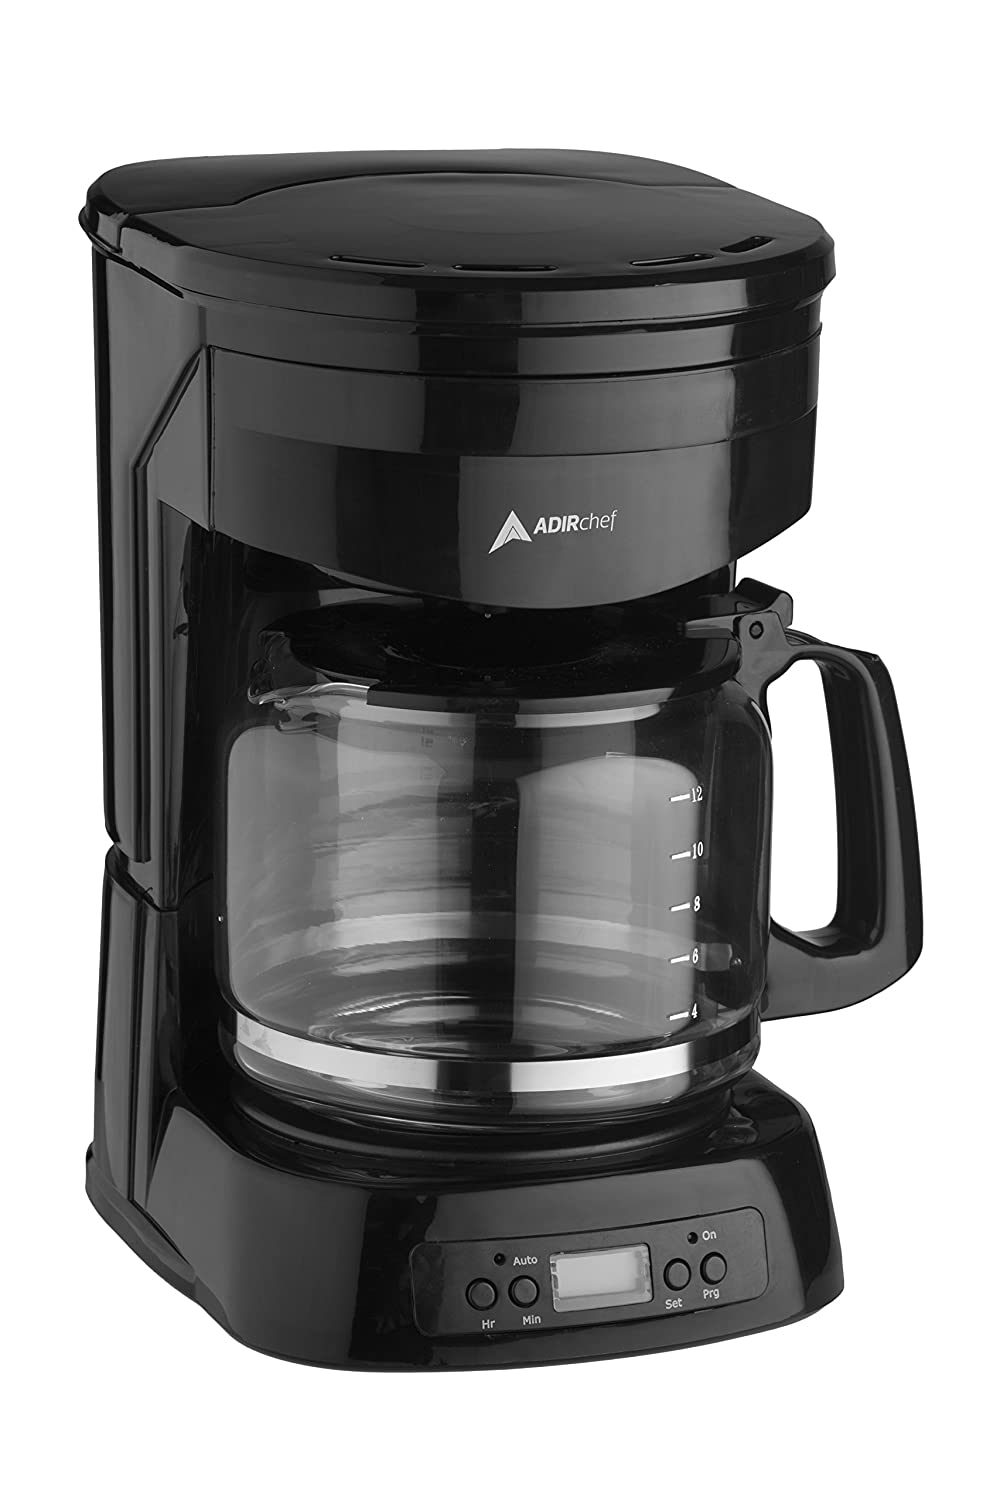 AdirChef 12-Cup Programmable Coffeemaker with Automatic Turn-On Timer and Automatic 2 Hours Turn-Off